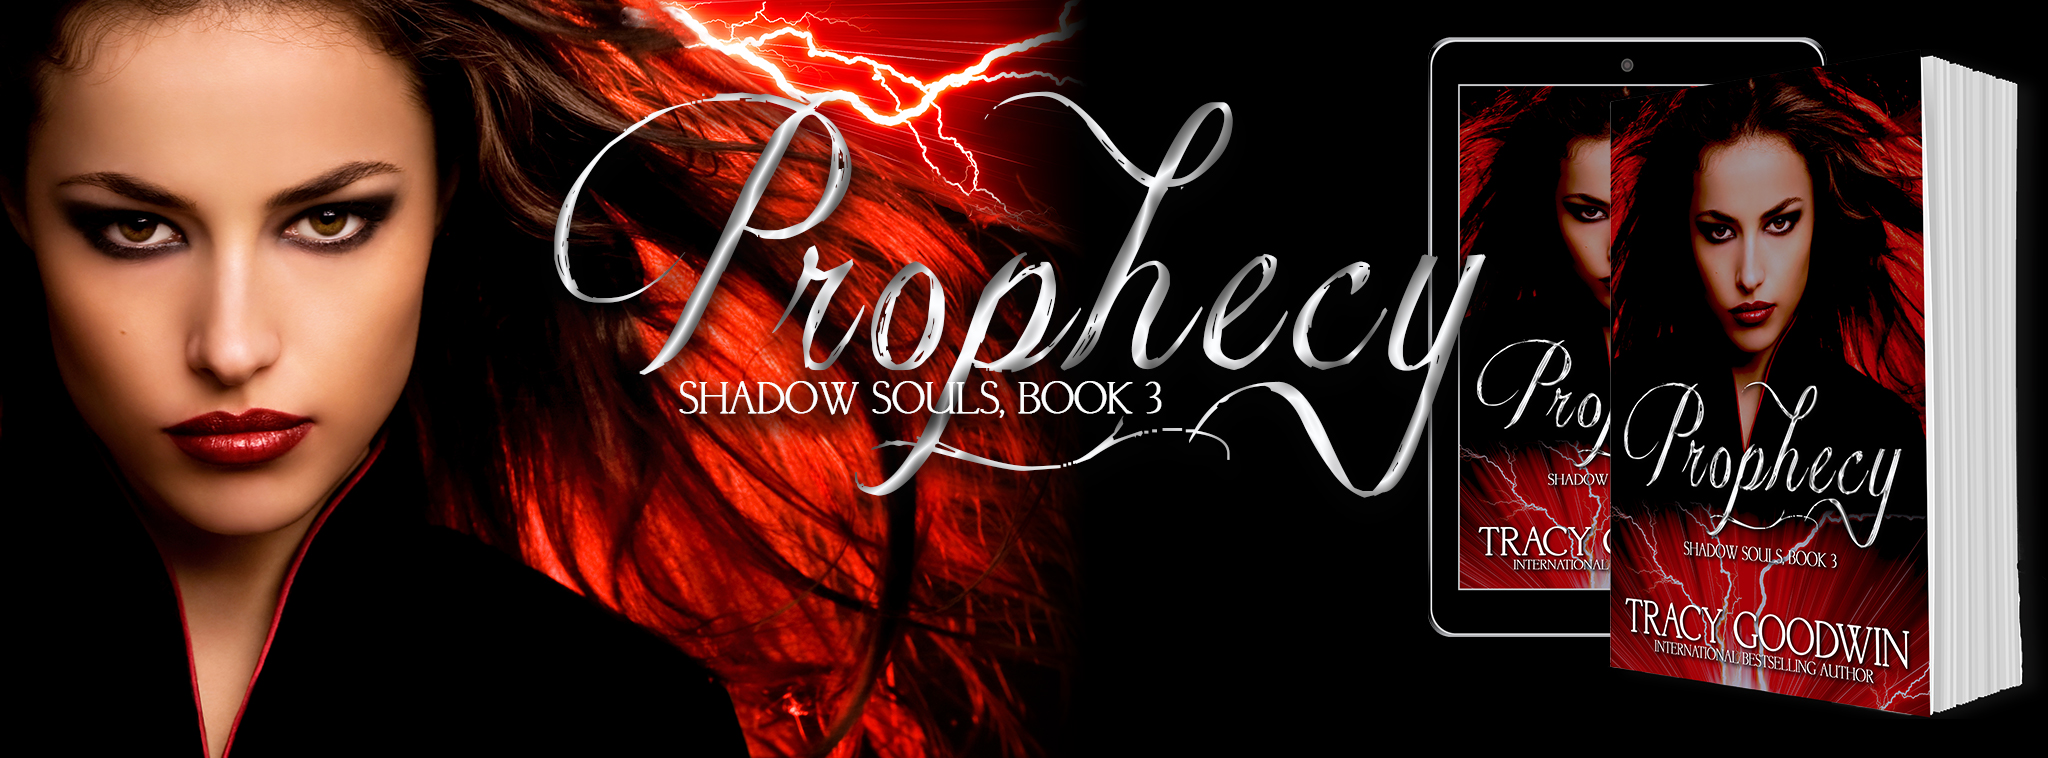 prophecy-fb-banner